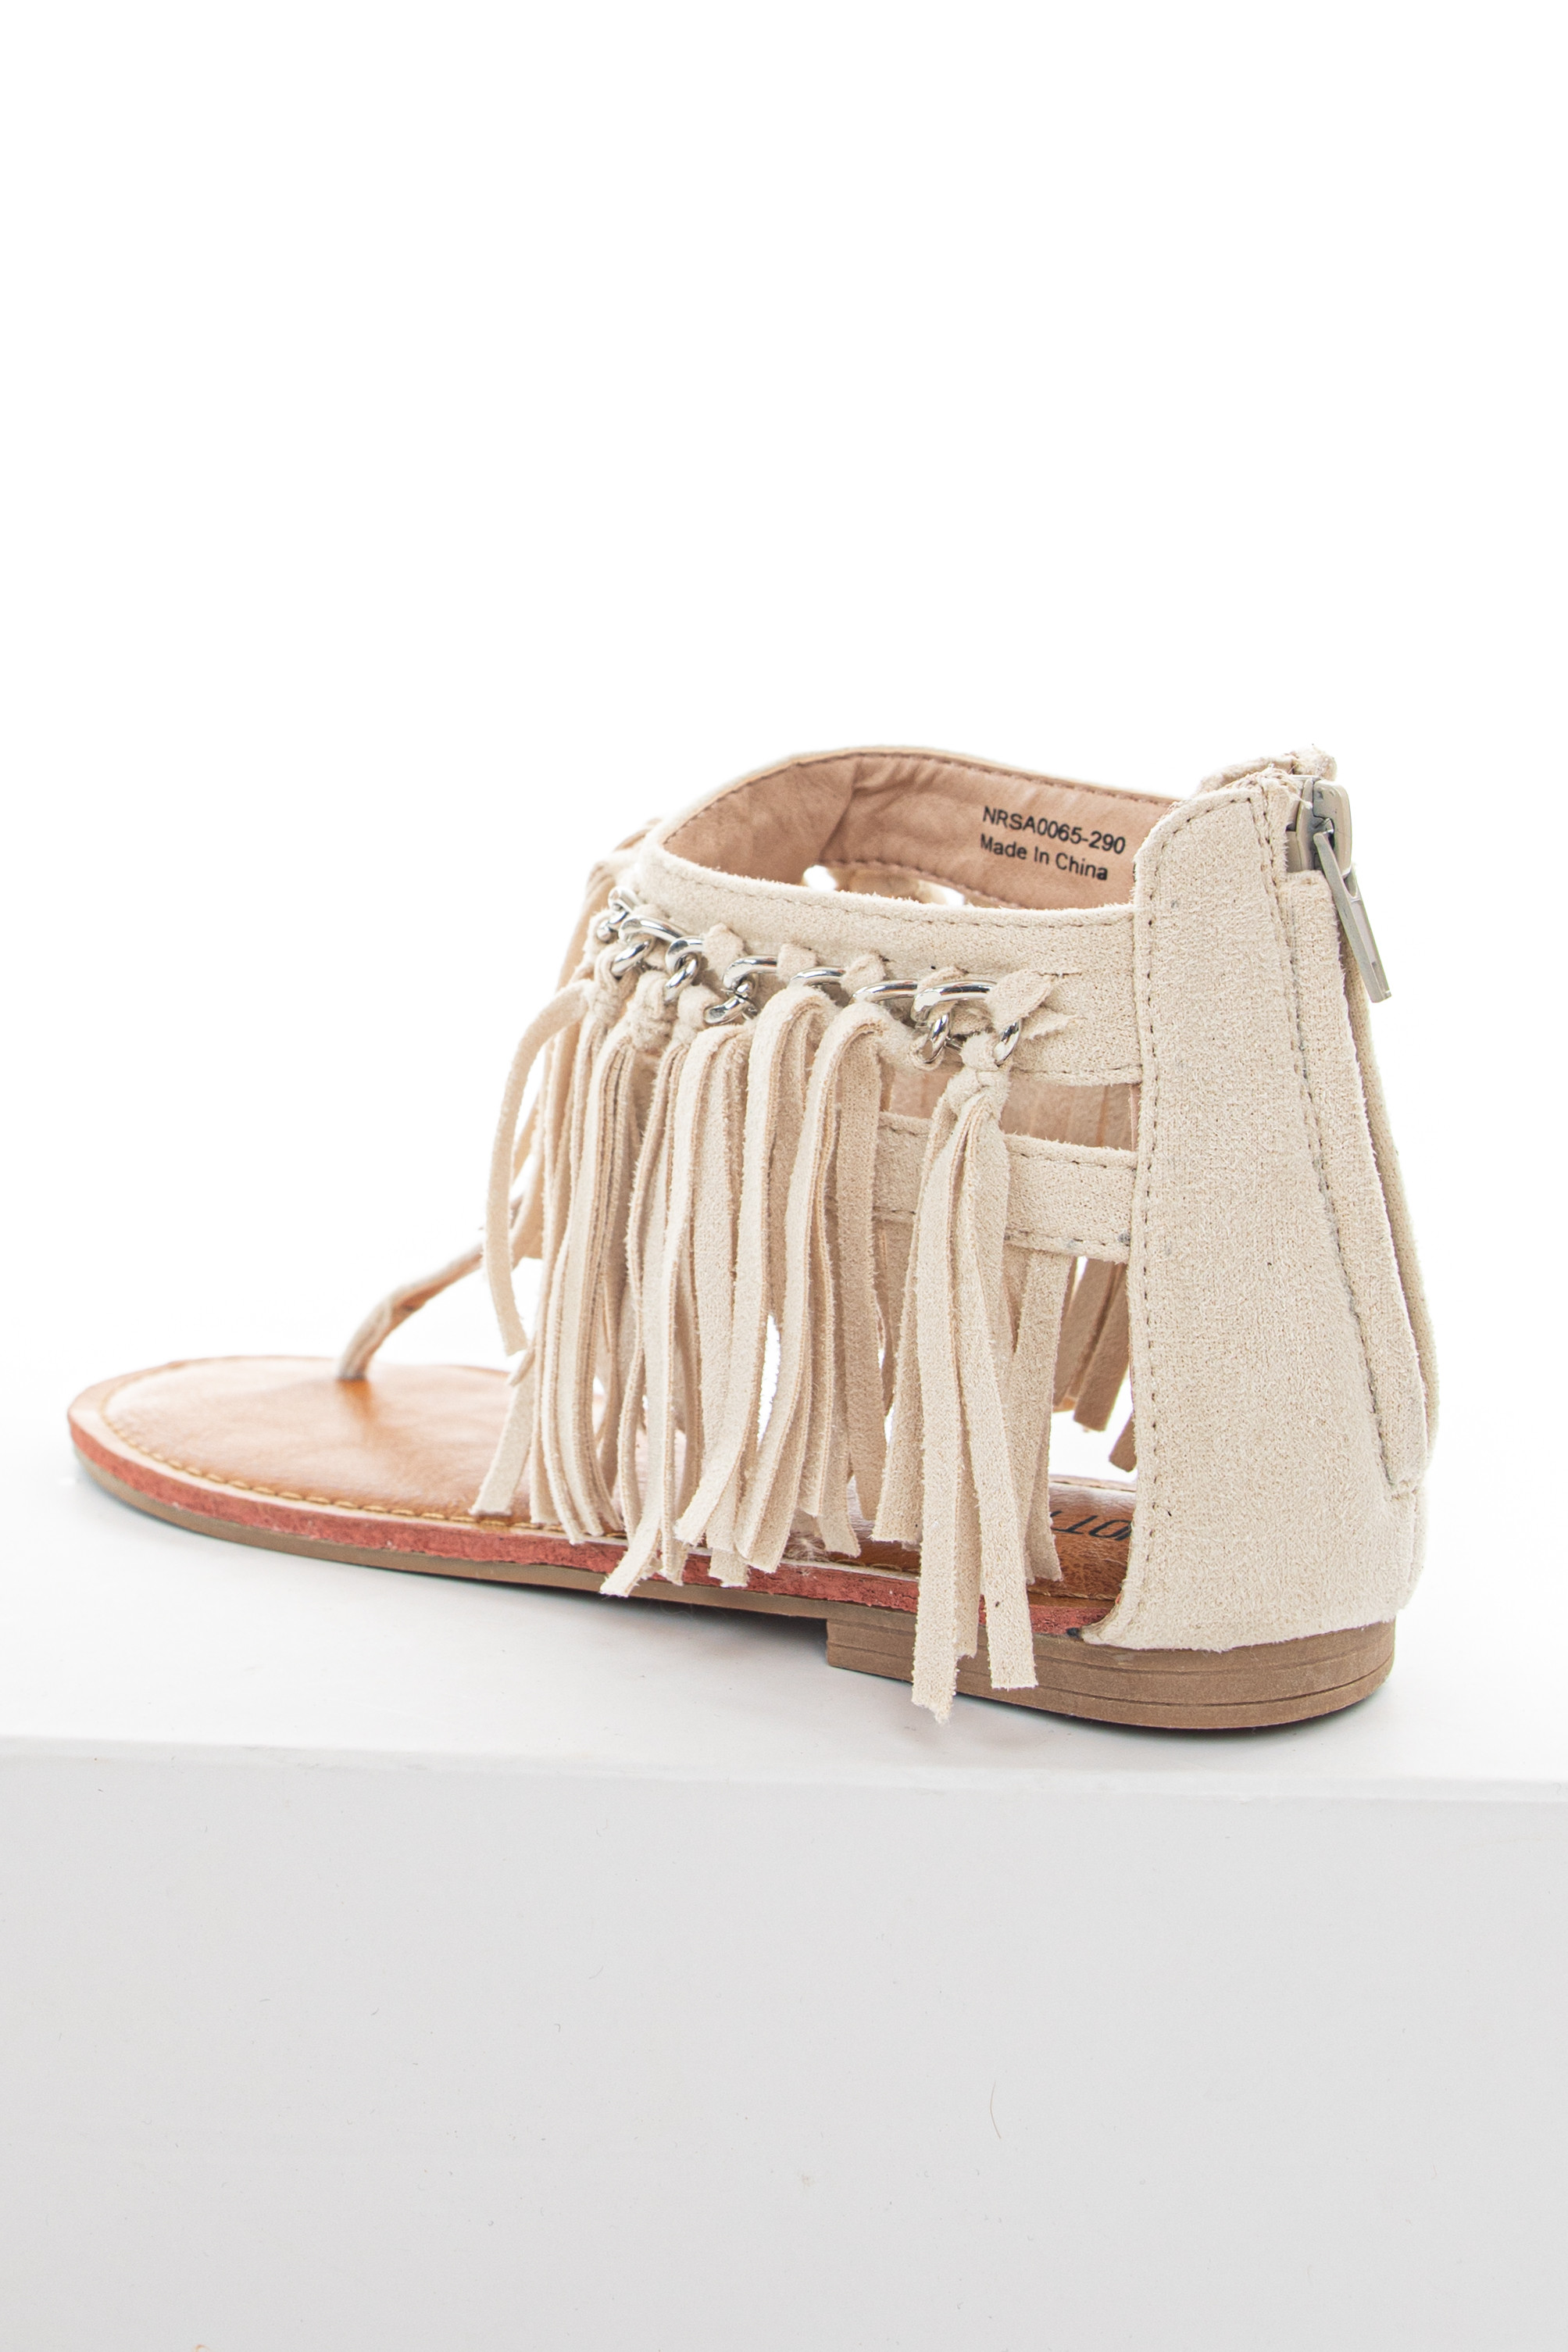 Cream Suede Thong Sandals with Fringed Chain